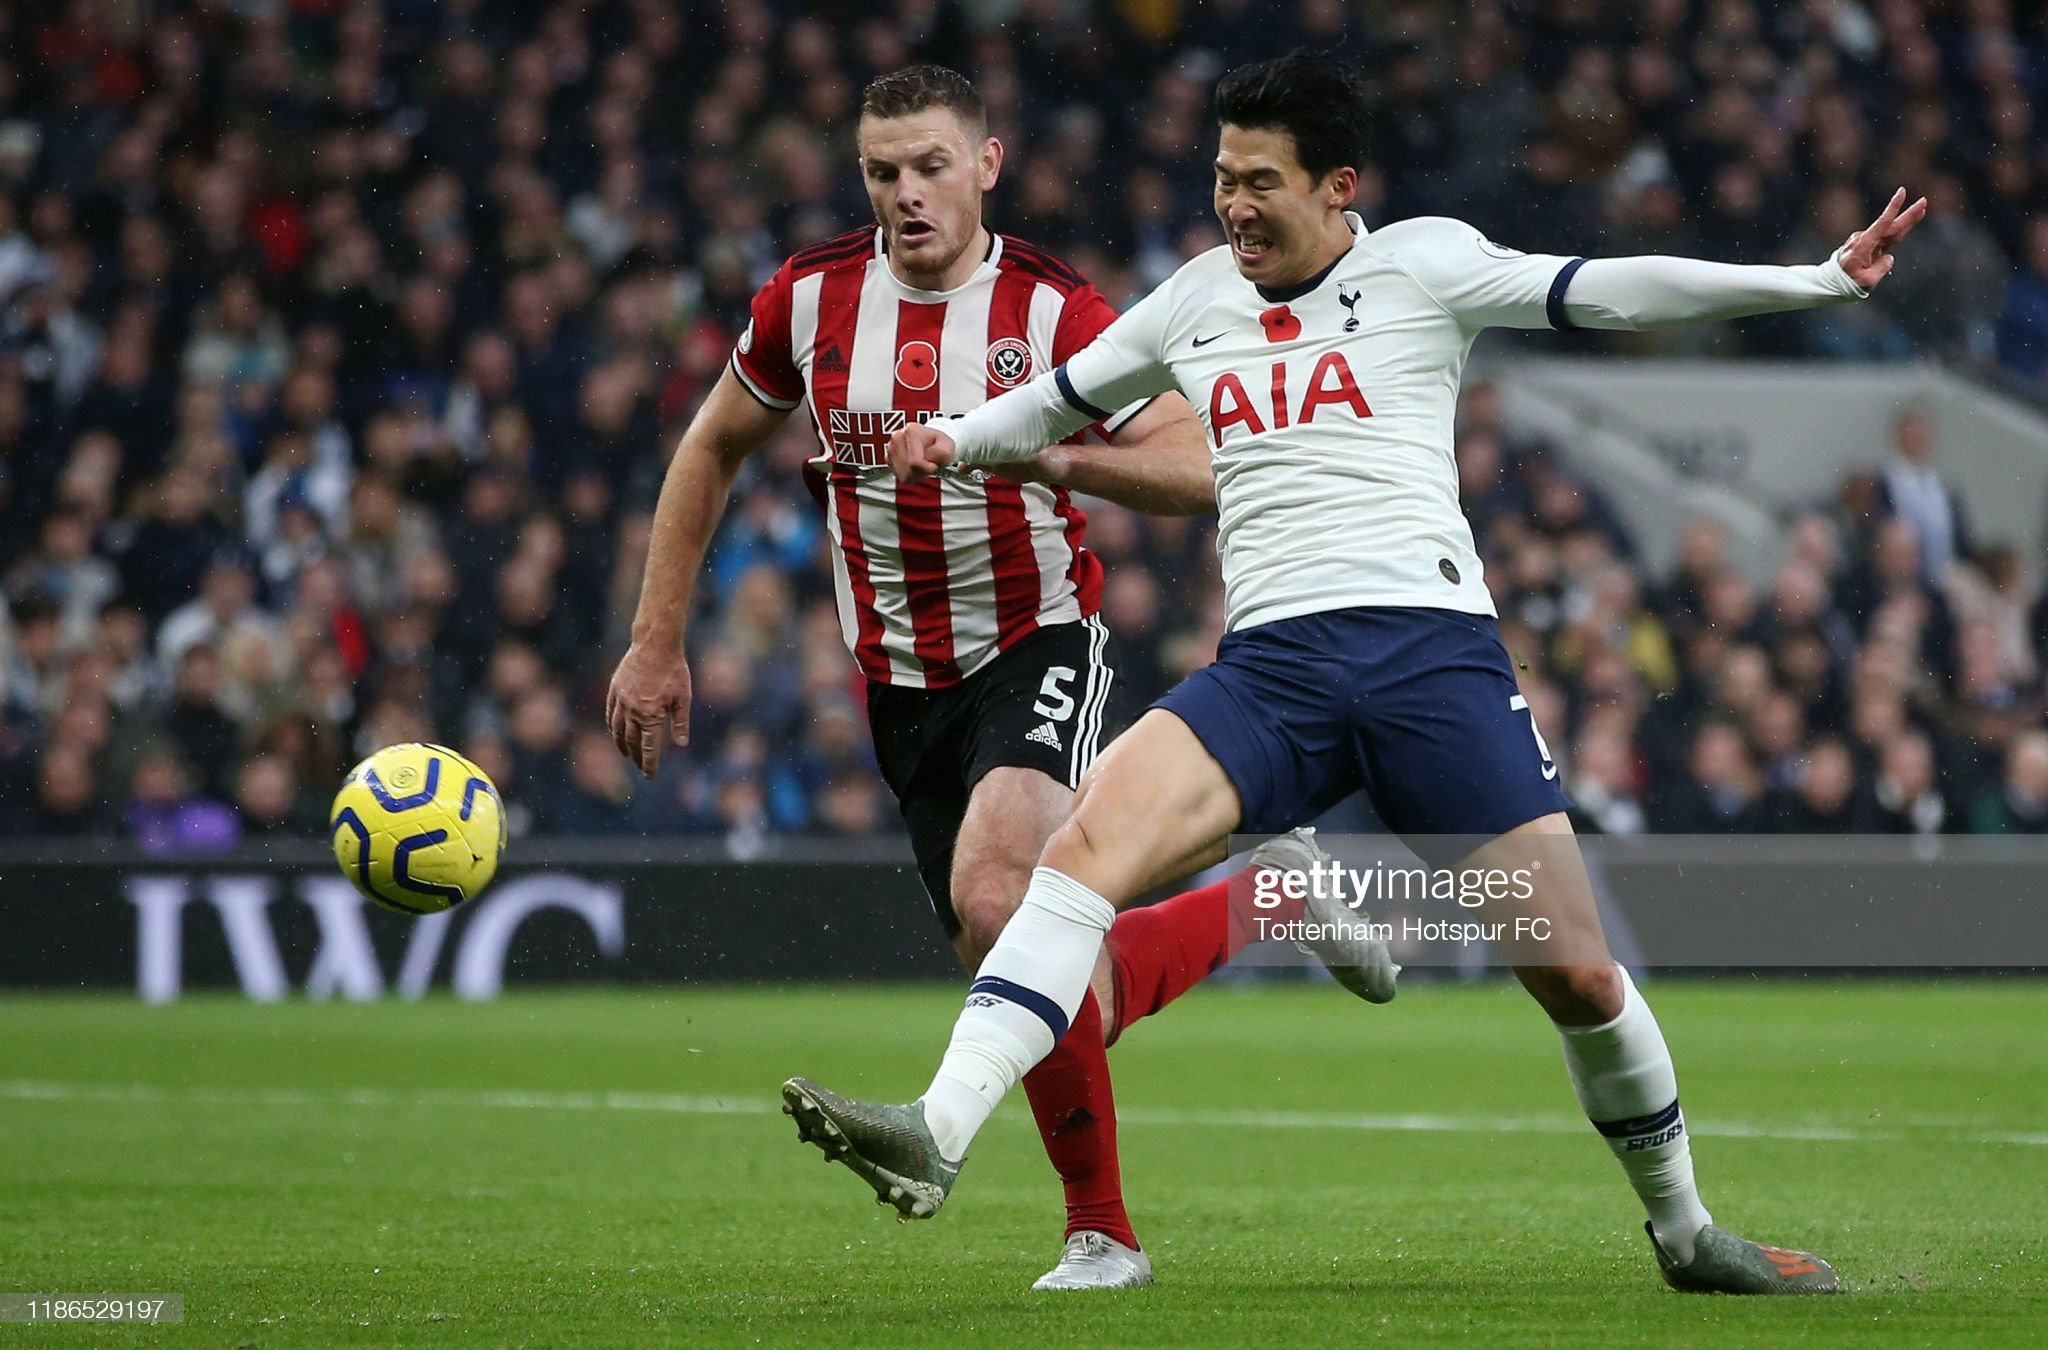 Sheffield United vs Tottenham preview, prediction and odds